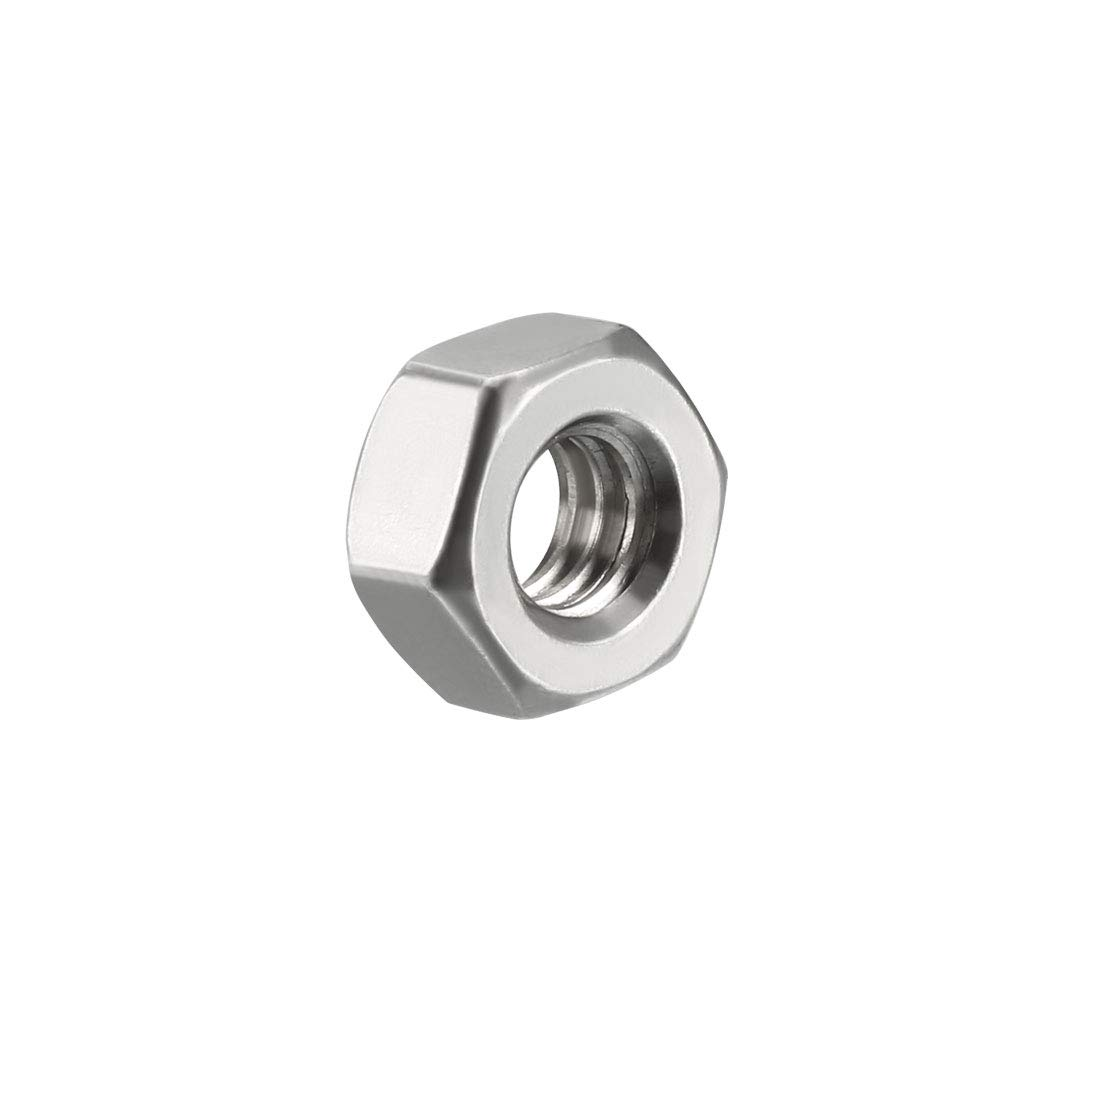 uxcell 8#-32 304 Stainless Steel Hexagon Hex Nut Silver Tone 100pcs